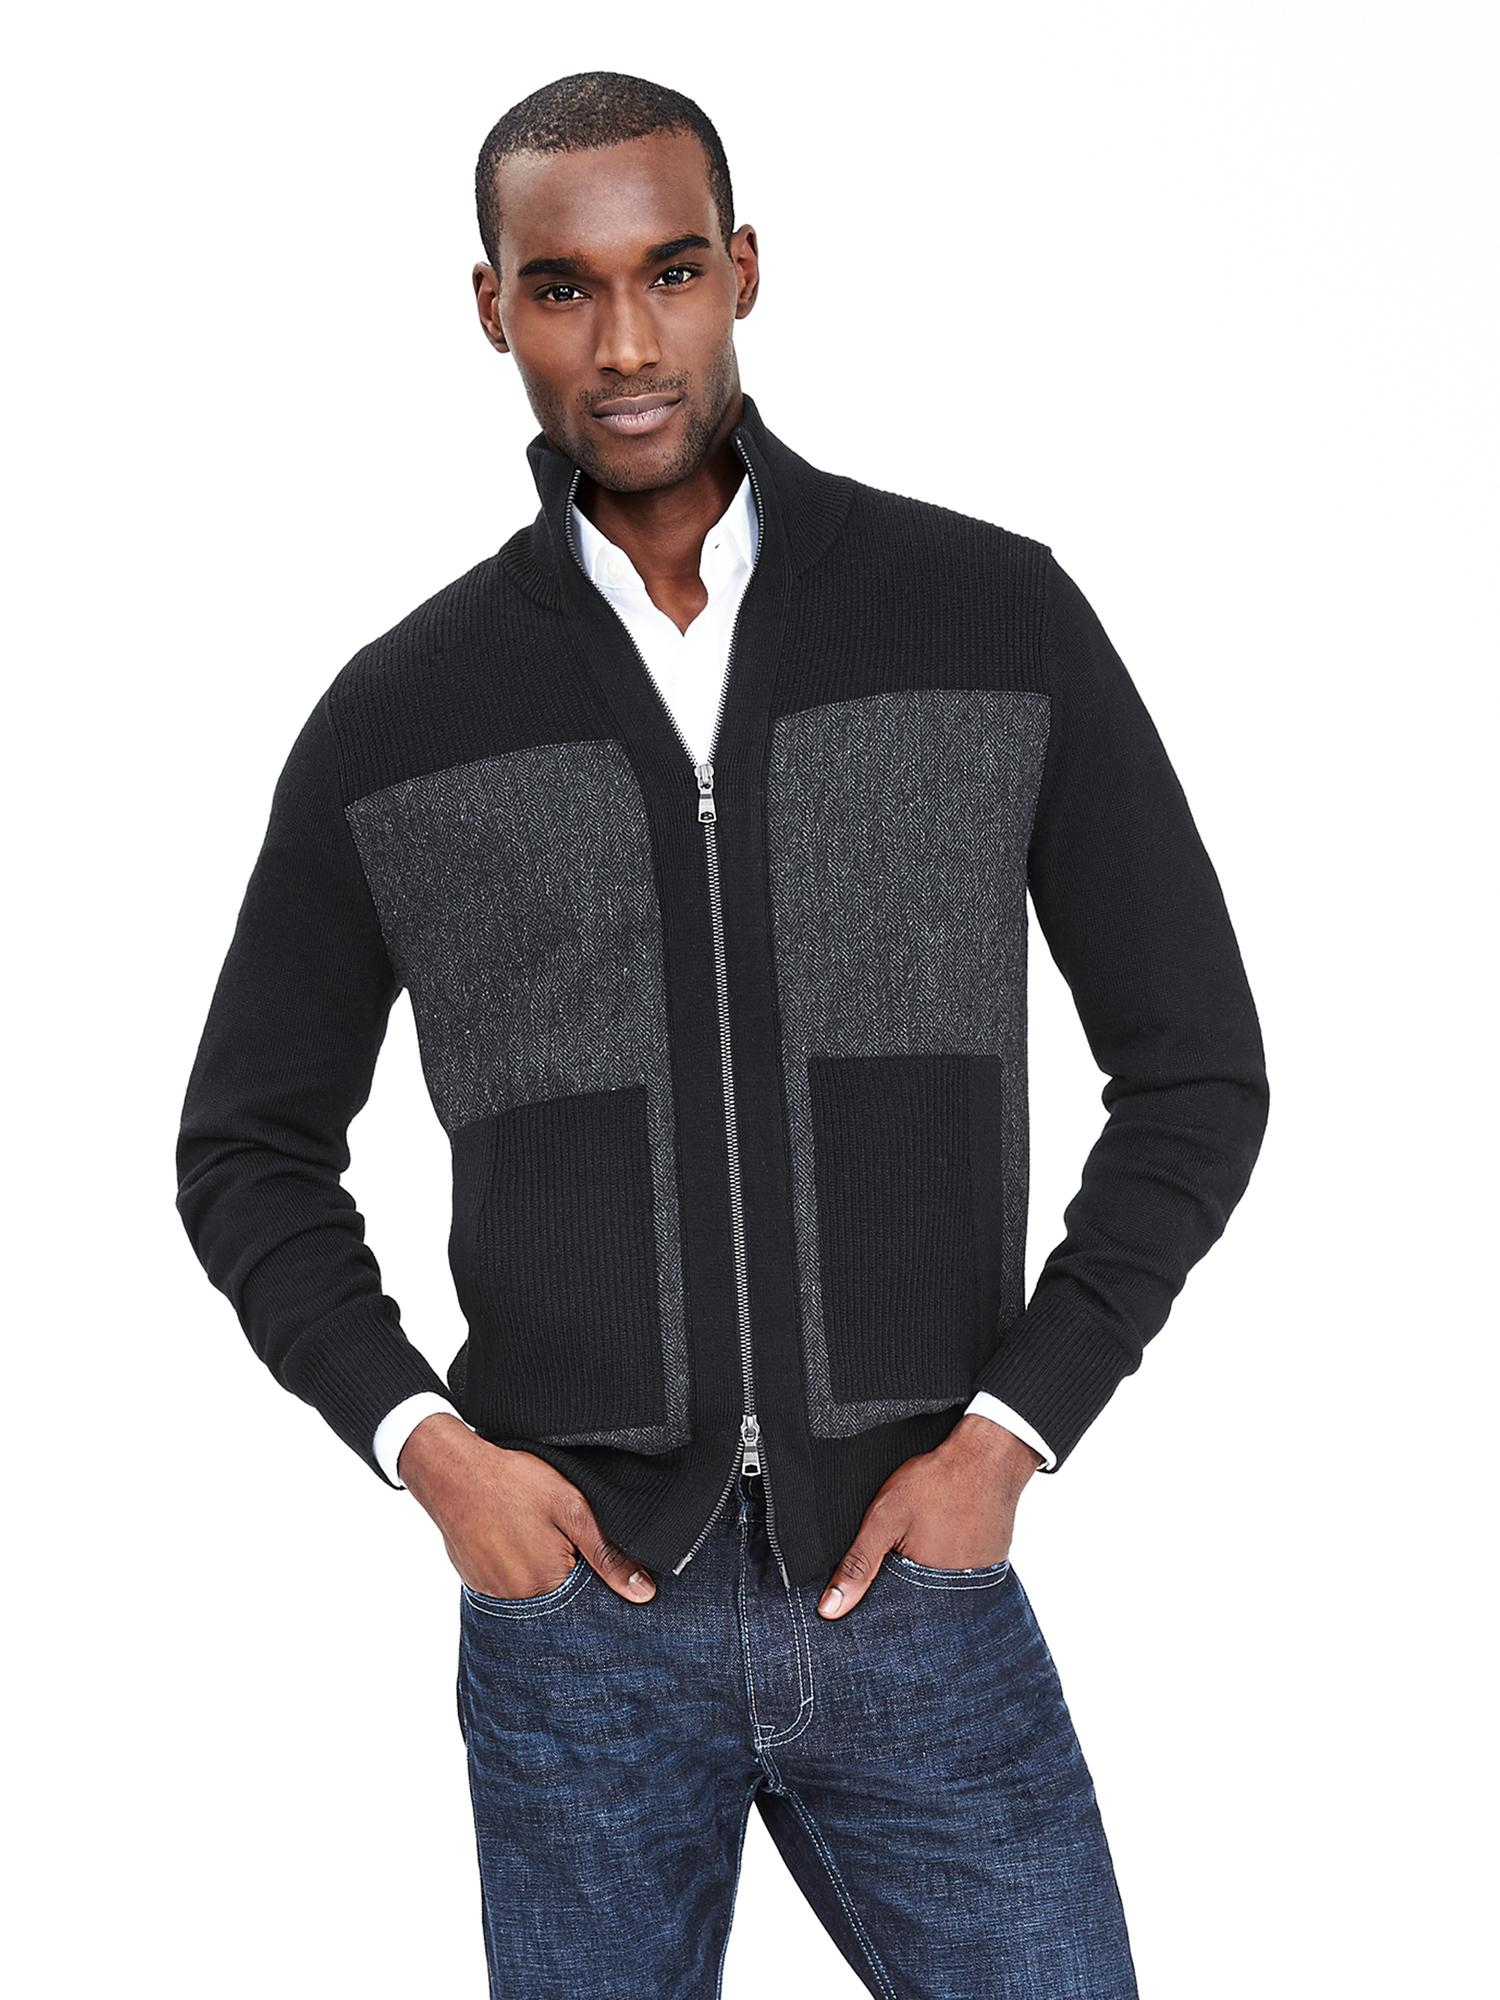 Elevate any wardrobe with Men's Outerwear from Banana Republic Factory. Browse an incredible selection of the latest Men's Outdoor Clothing and find a great fit for any individual style. Create your next great look today with stylish Men's Outerwear from Banana Republic Factory.